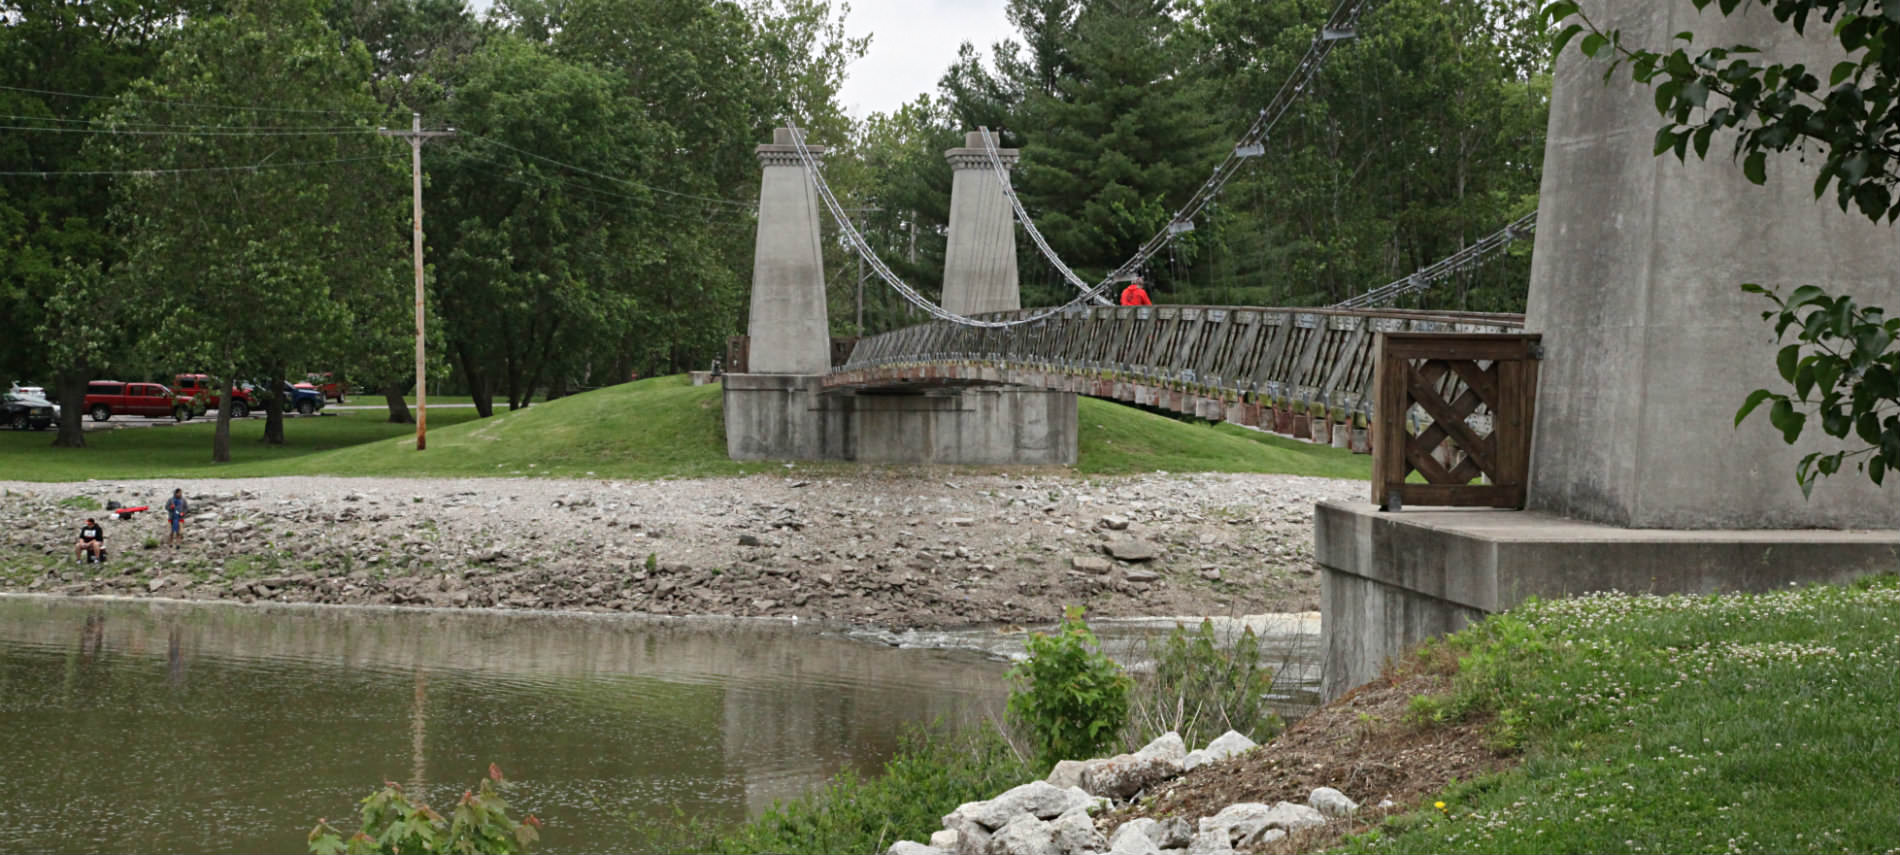 Bridge with pillars over creek, biker with red jacket on bridge, fishermen on bank of creek, parking lot in park.